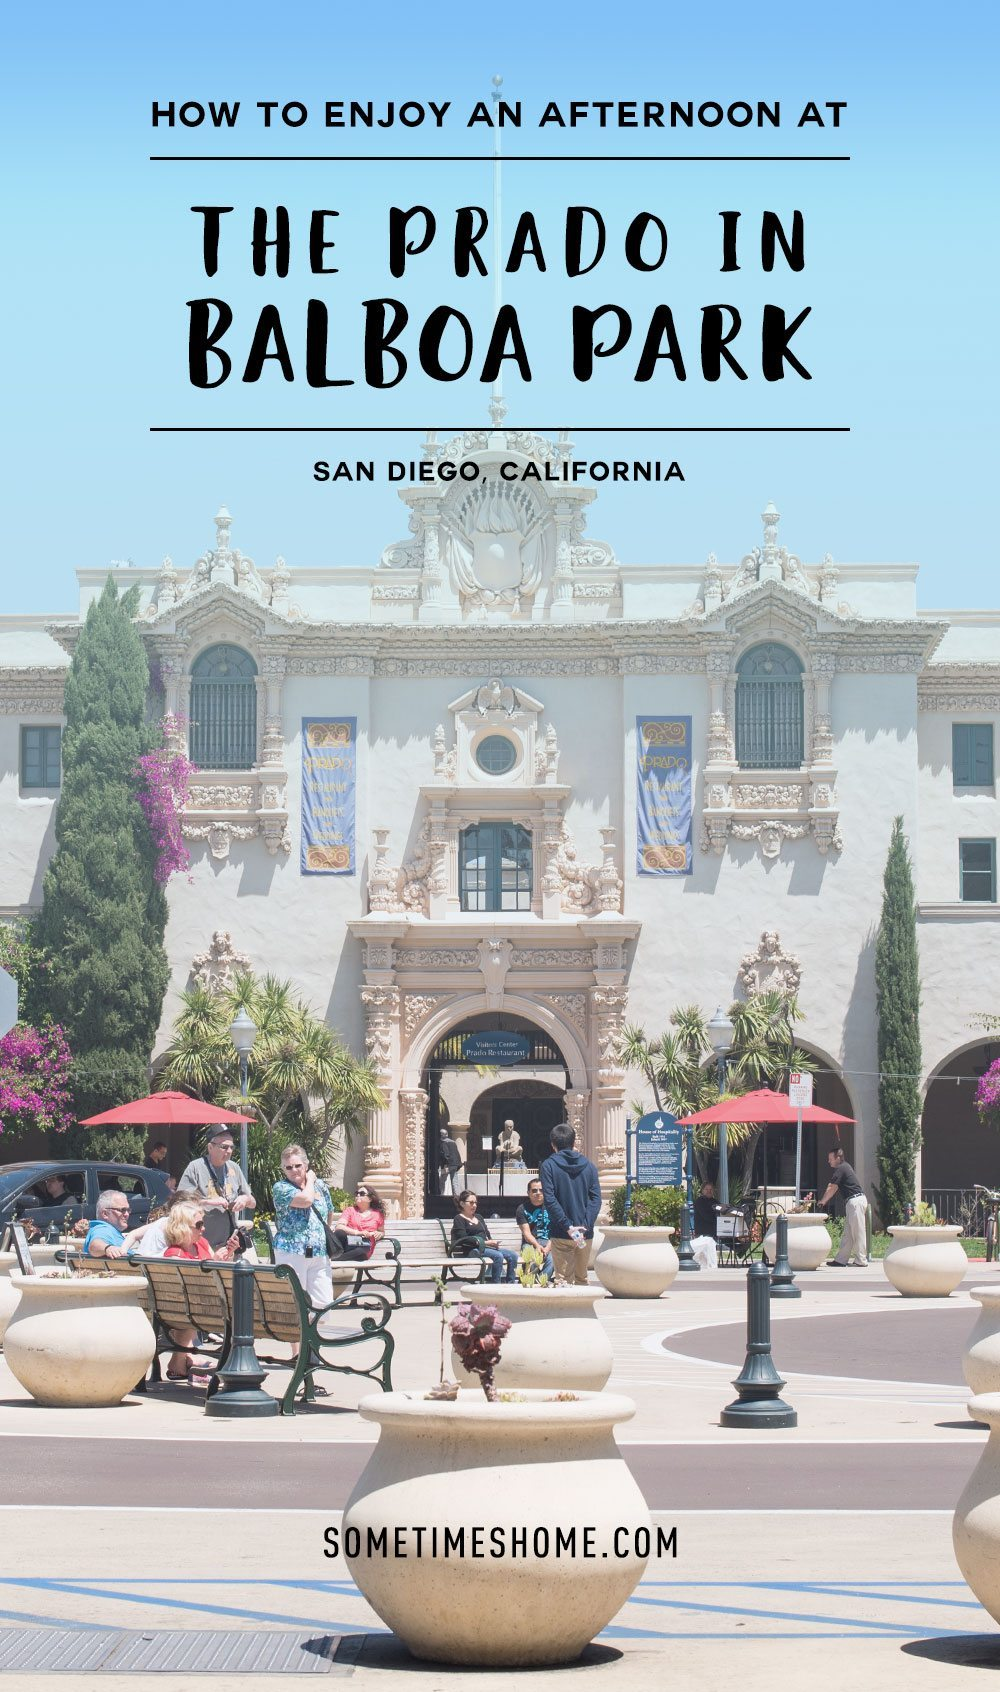 How to Enjoy an Afternoon at The Prado in Balboa Park on Sometimes Home travel site.